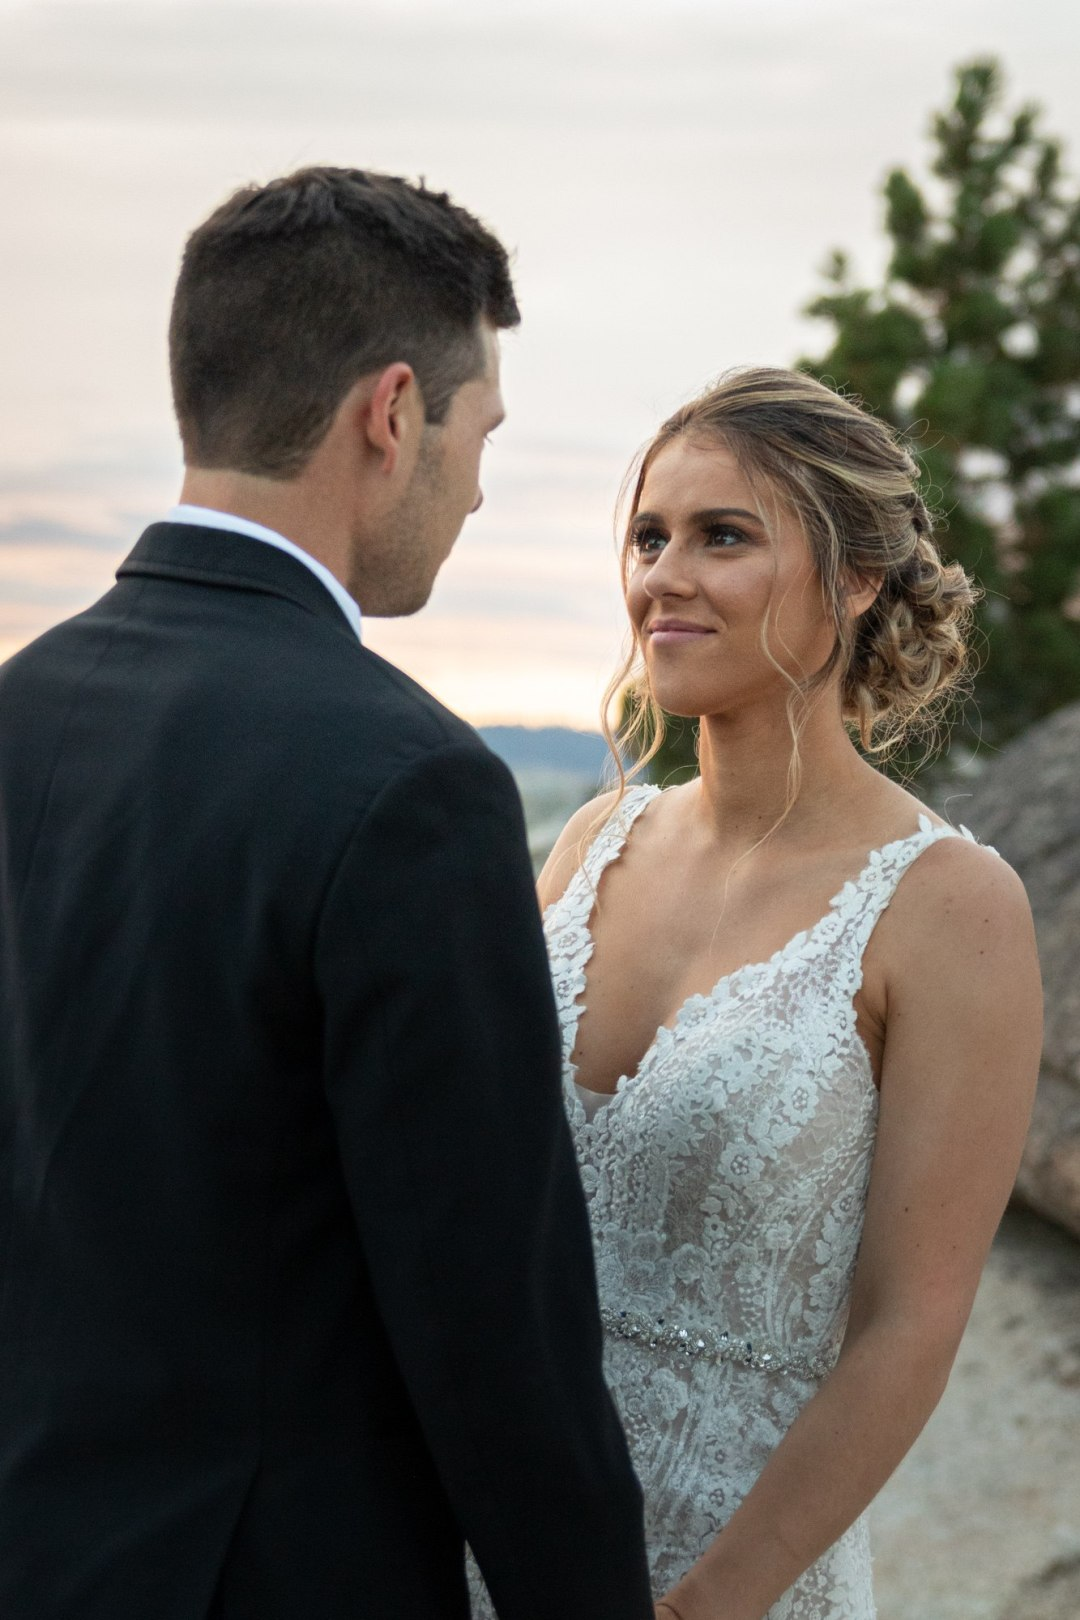 Bride and Groom looking at each other after their Taft Point wedding ceremony